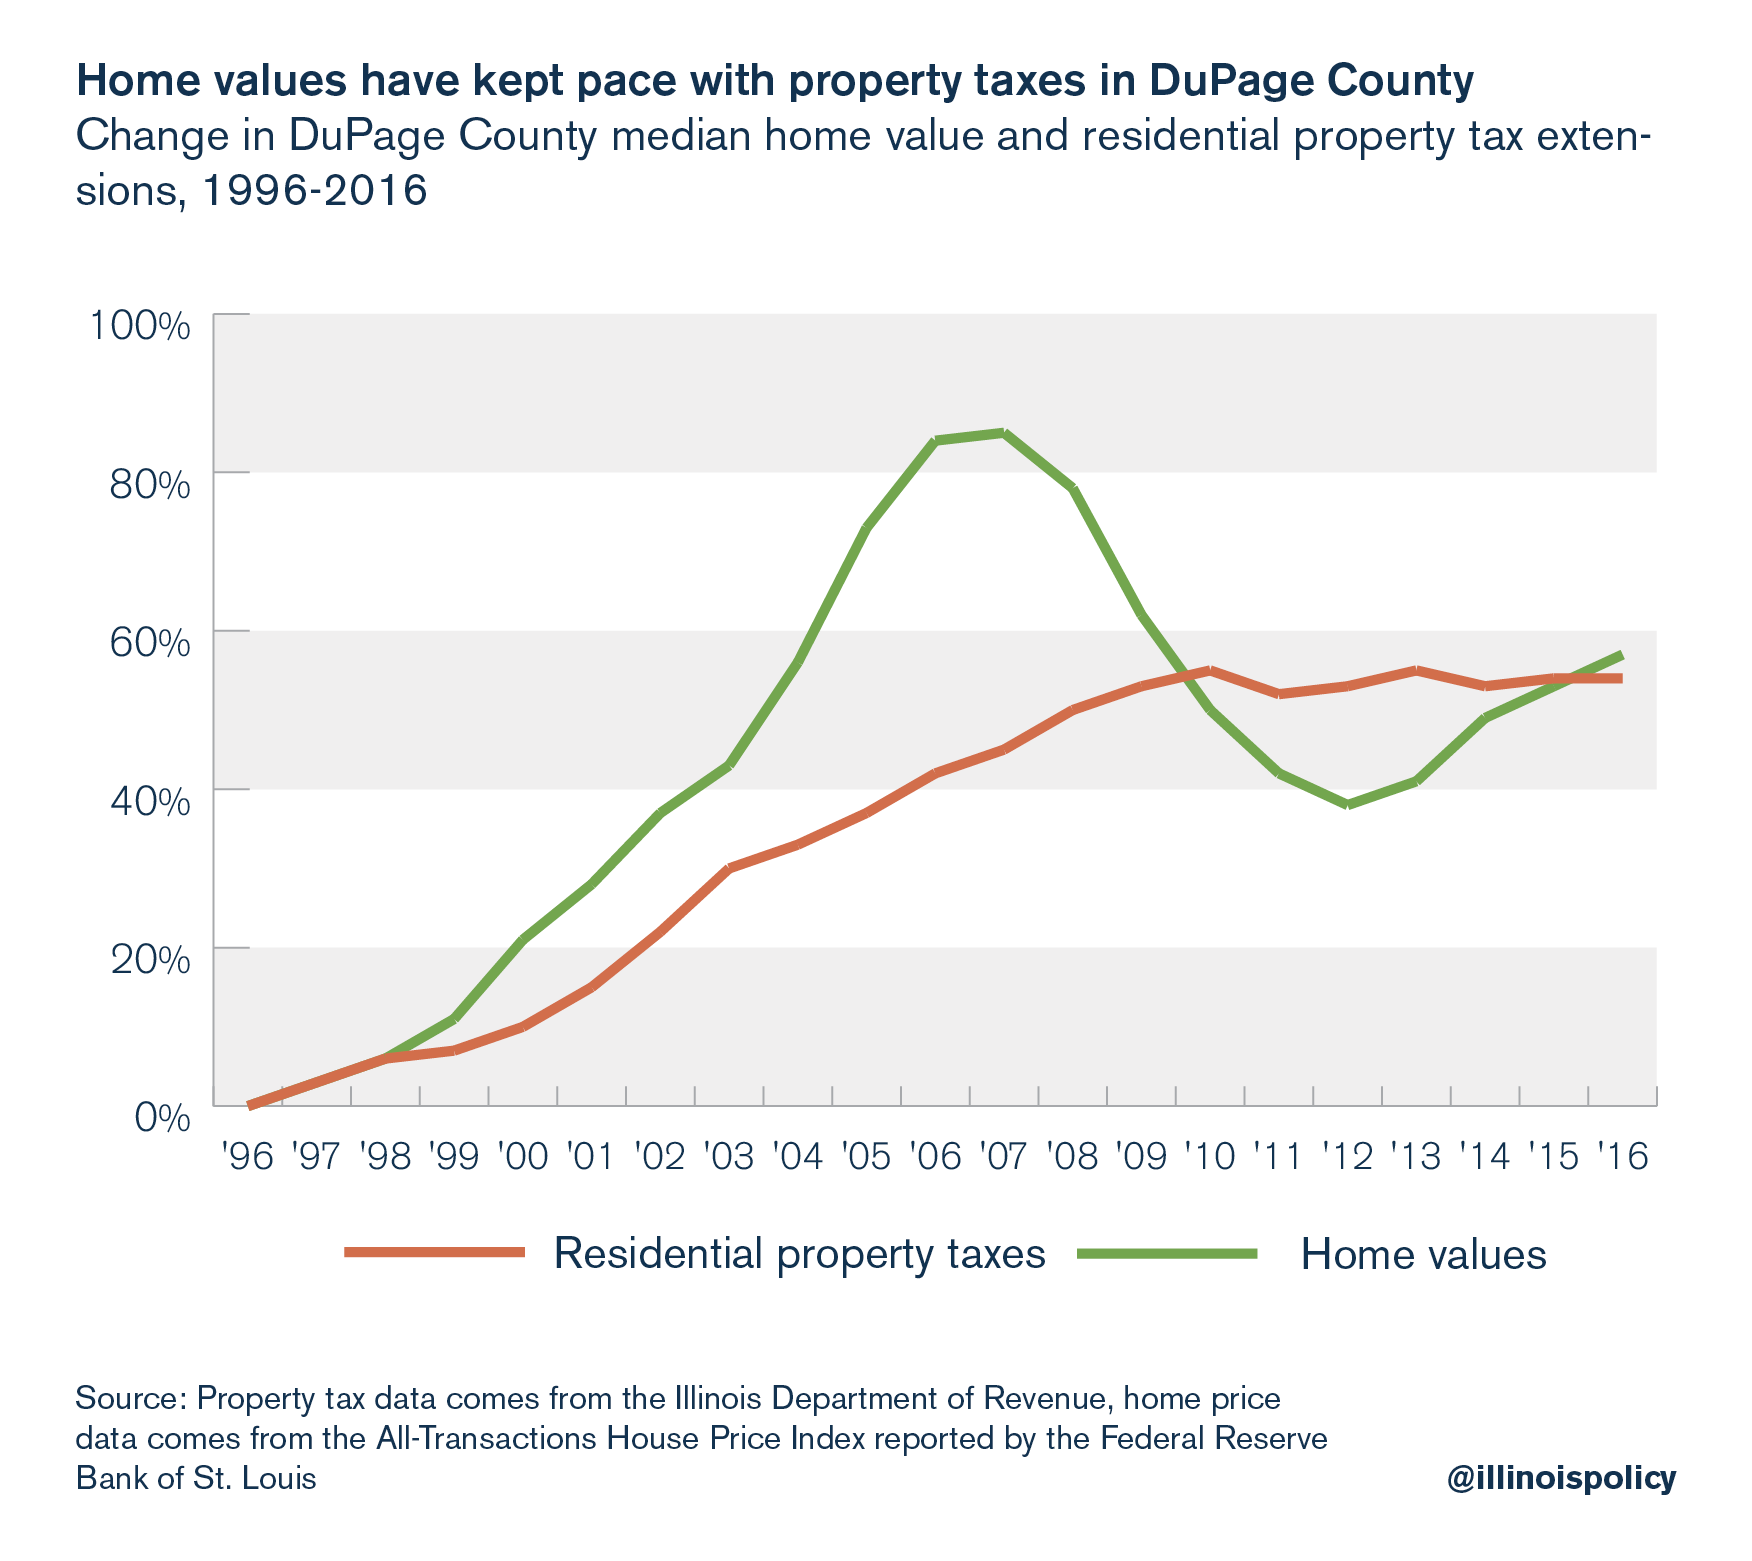 Home values have kept pace with property taxes in DuPage county